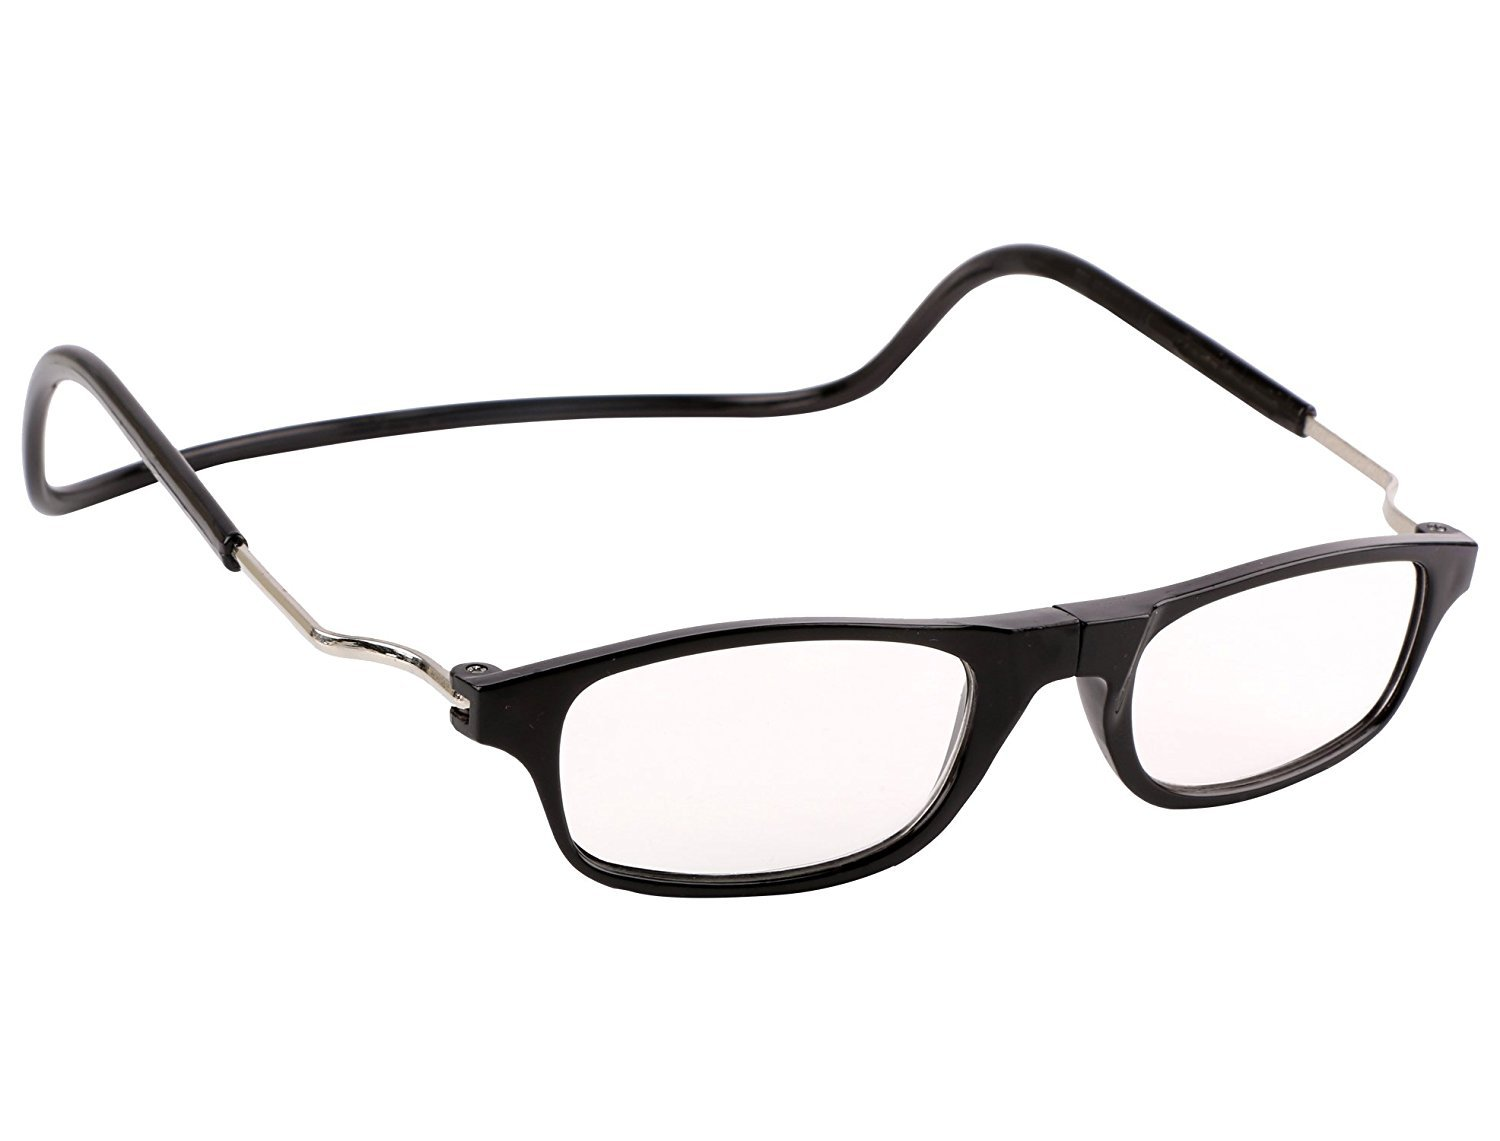 73e3f36a7bef Affaires Magnetic Reading Spectacle Glasses For Near Vision (+2.00 Power)   Amazon.in  Health   Personal Care